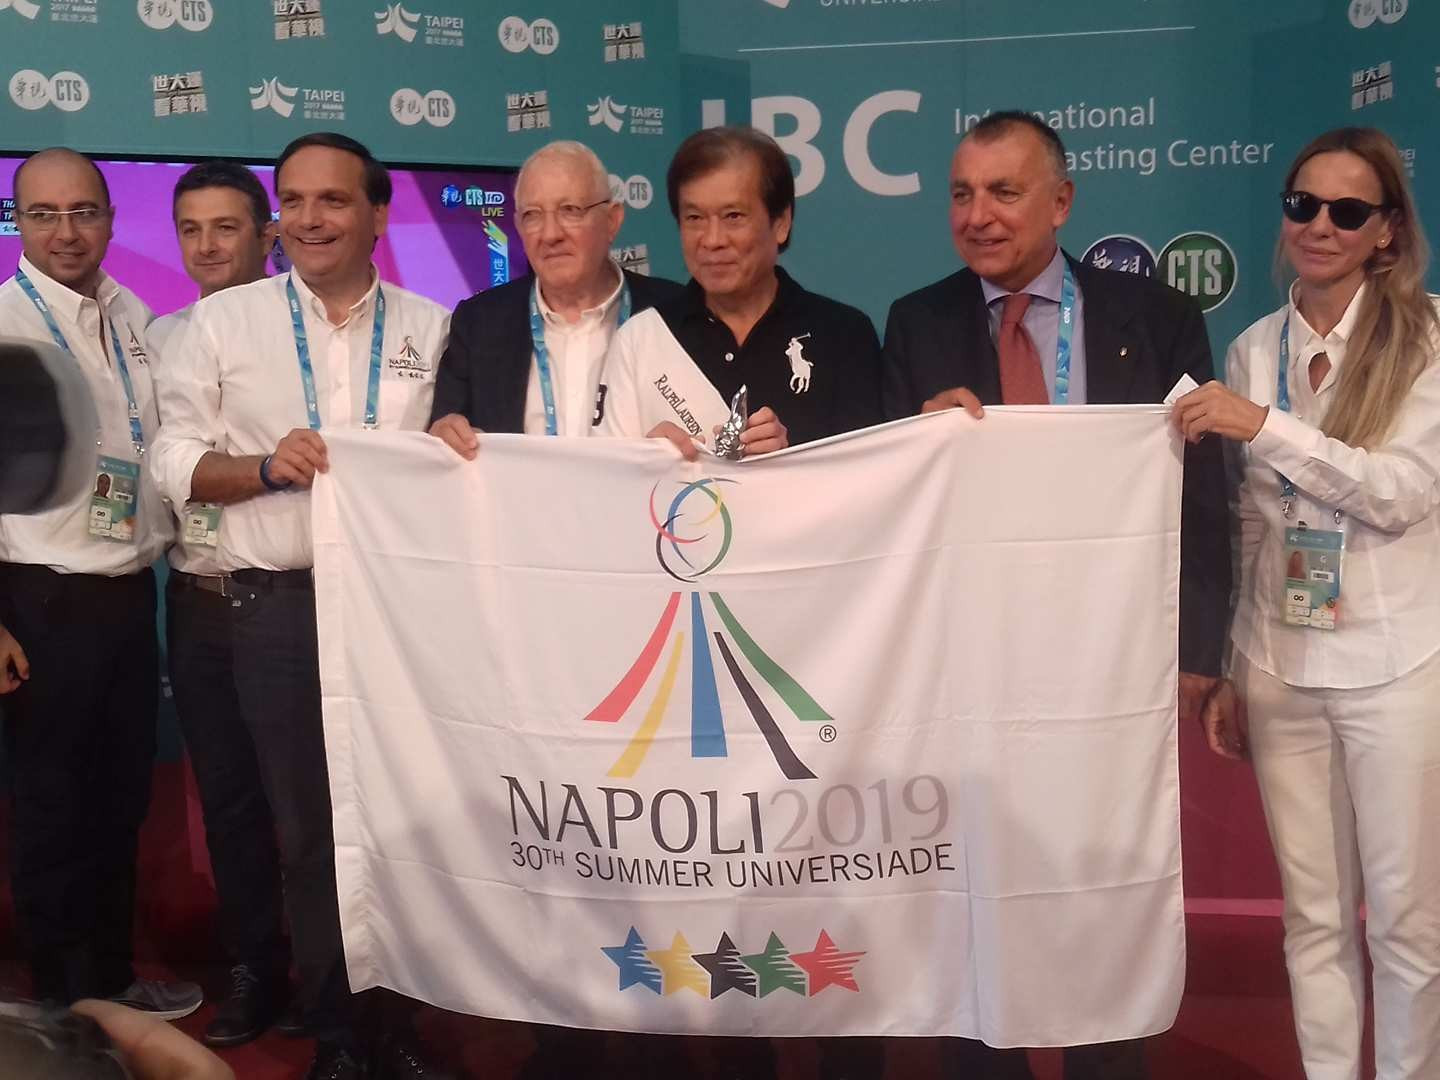 Naples 2019 praised Taipei's staging of the Universiade and promised a successful 30th edition ©ITG